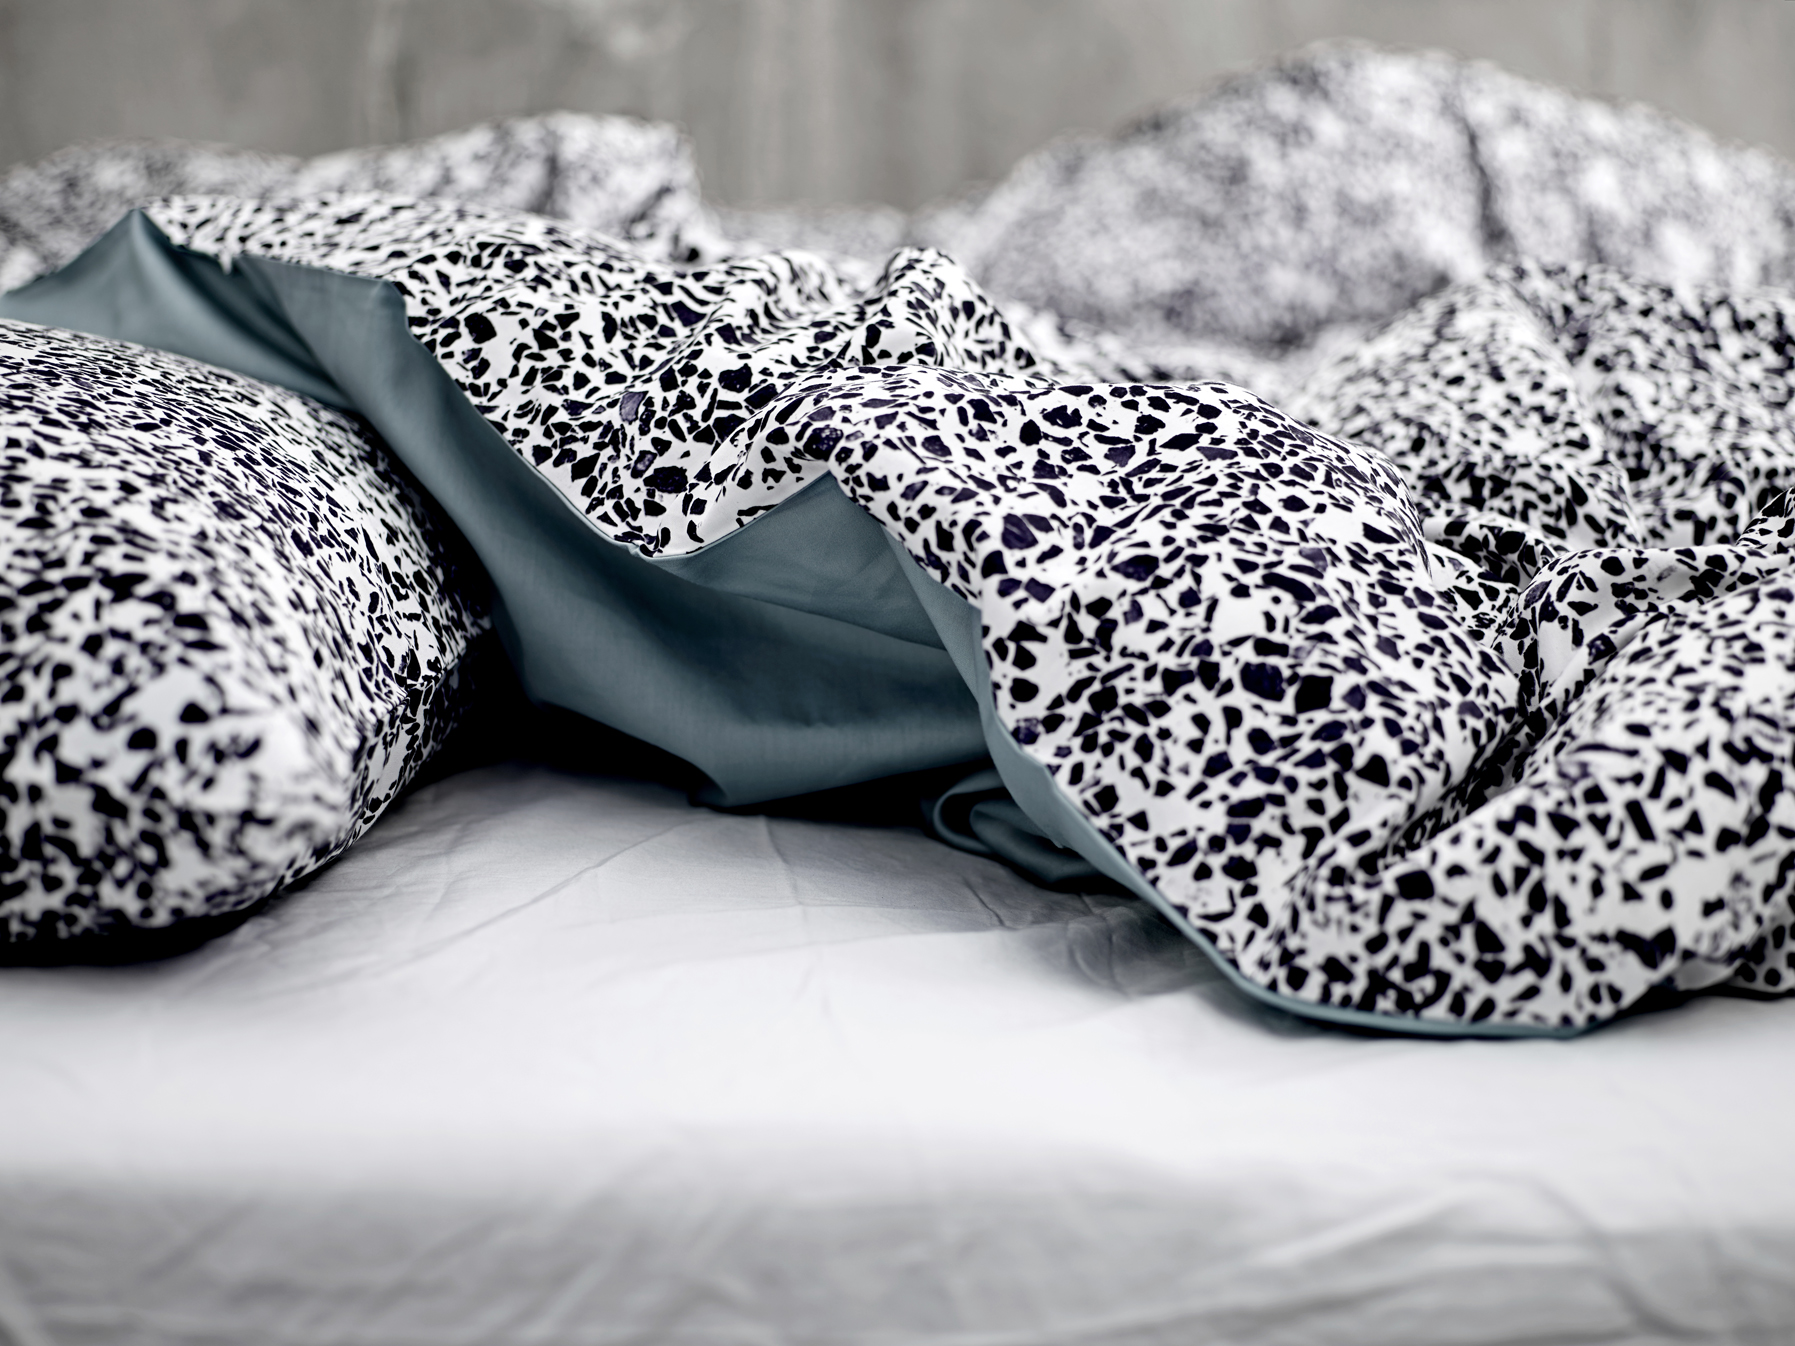 Bedding with Hagedornhagens' photography. This series is called 'Design Rock' from Södahl